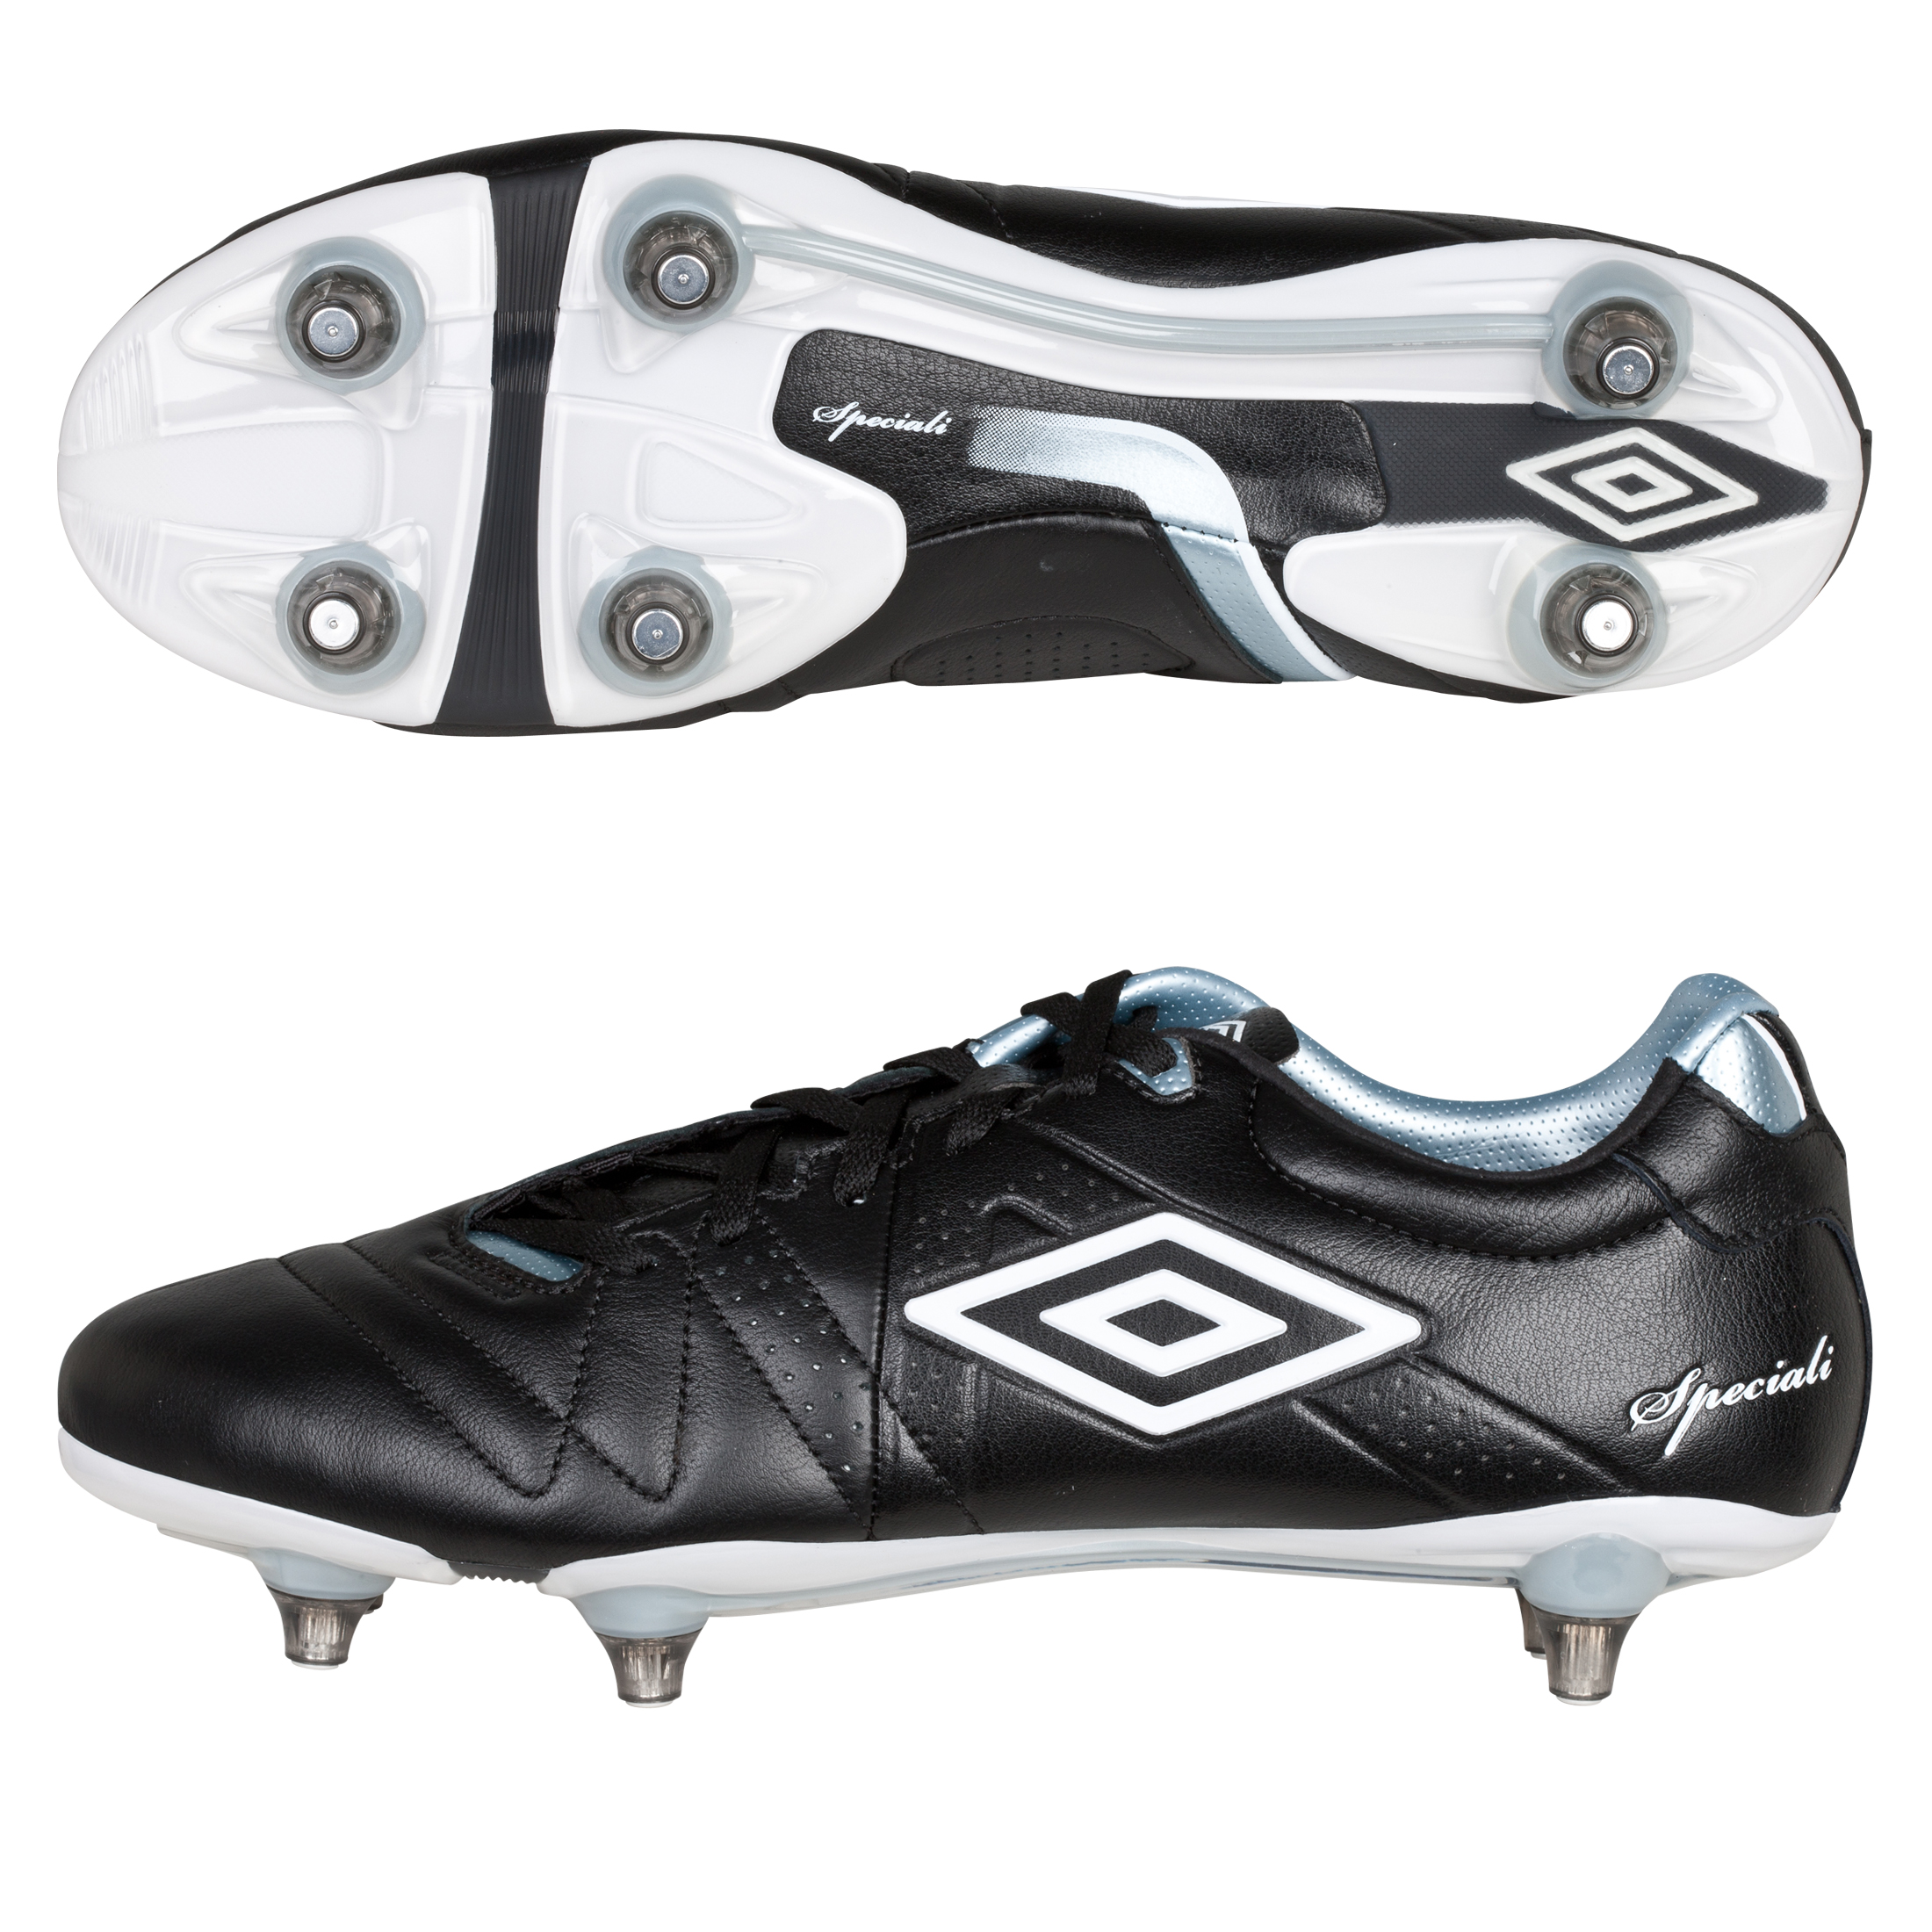 Umbro Speciali 3 Pro Soft Ground Football Boots - Black/White/Chrome